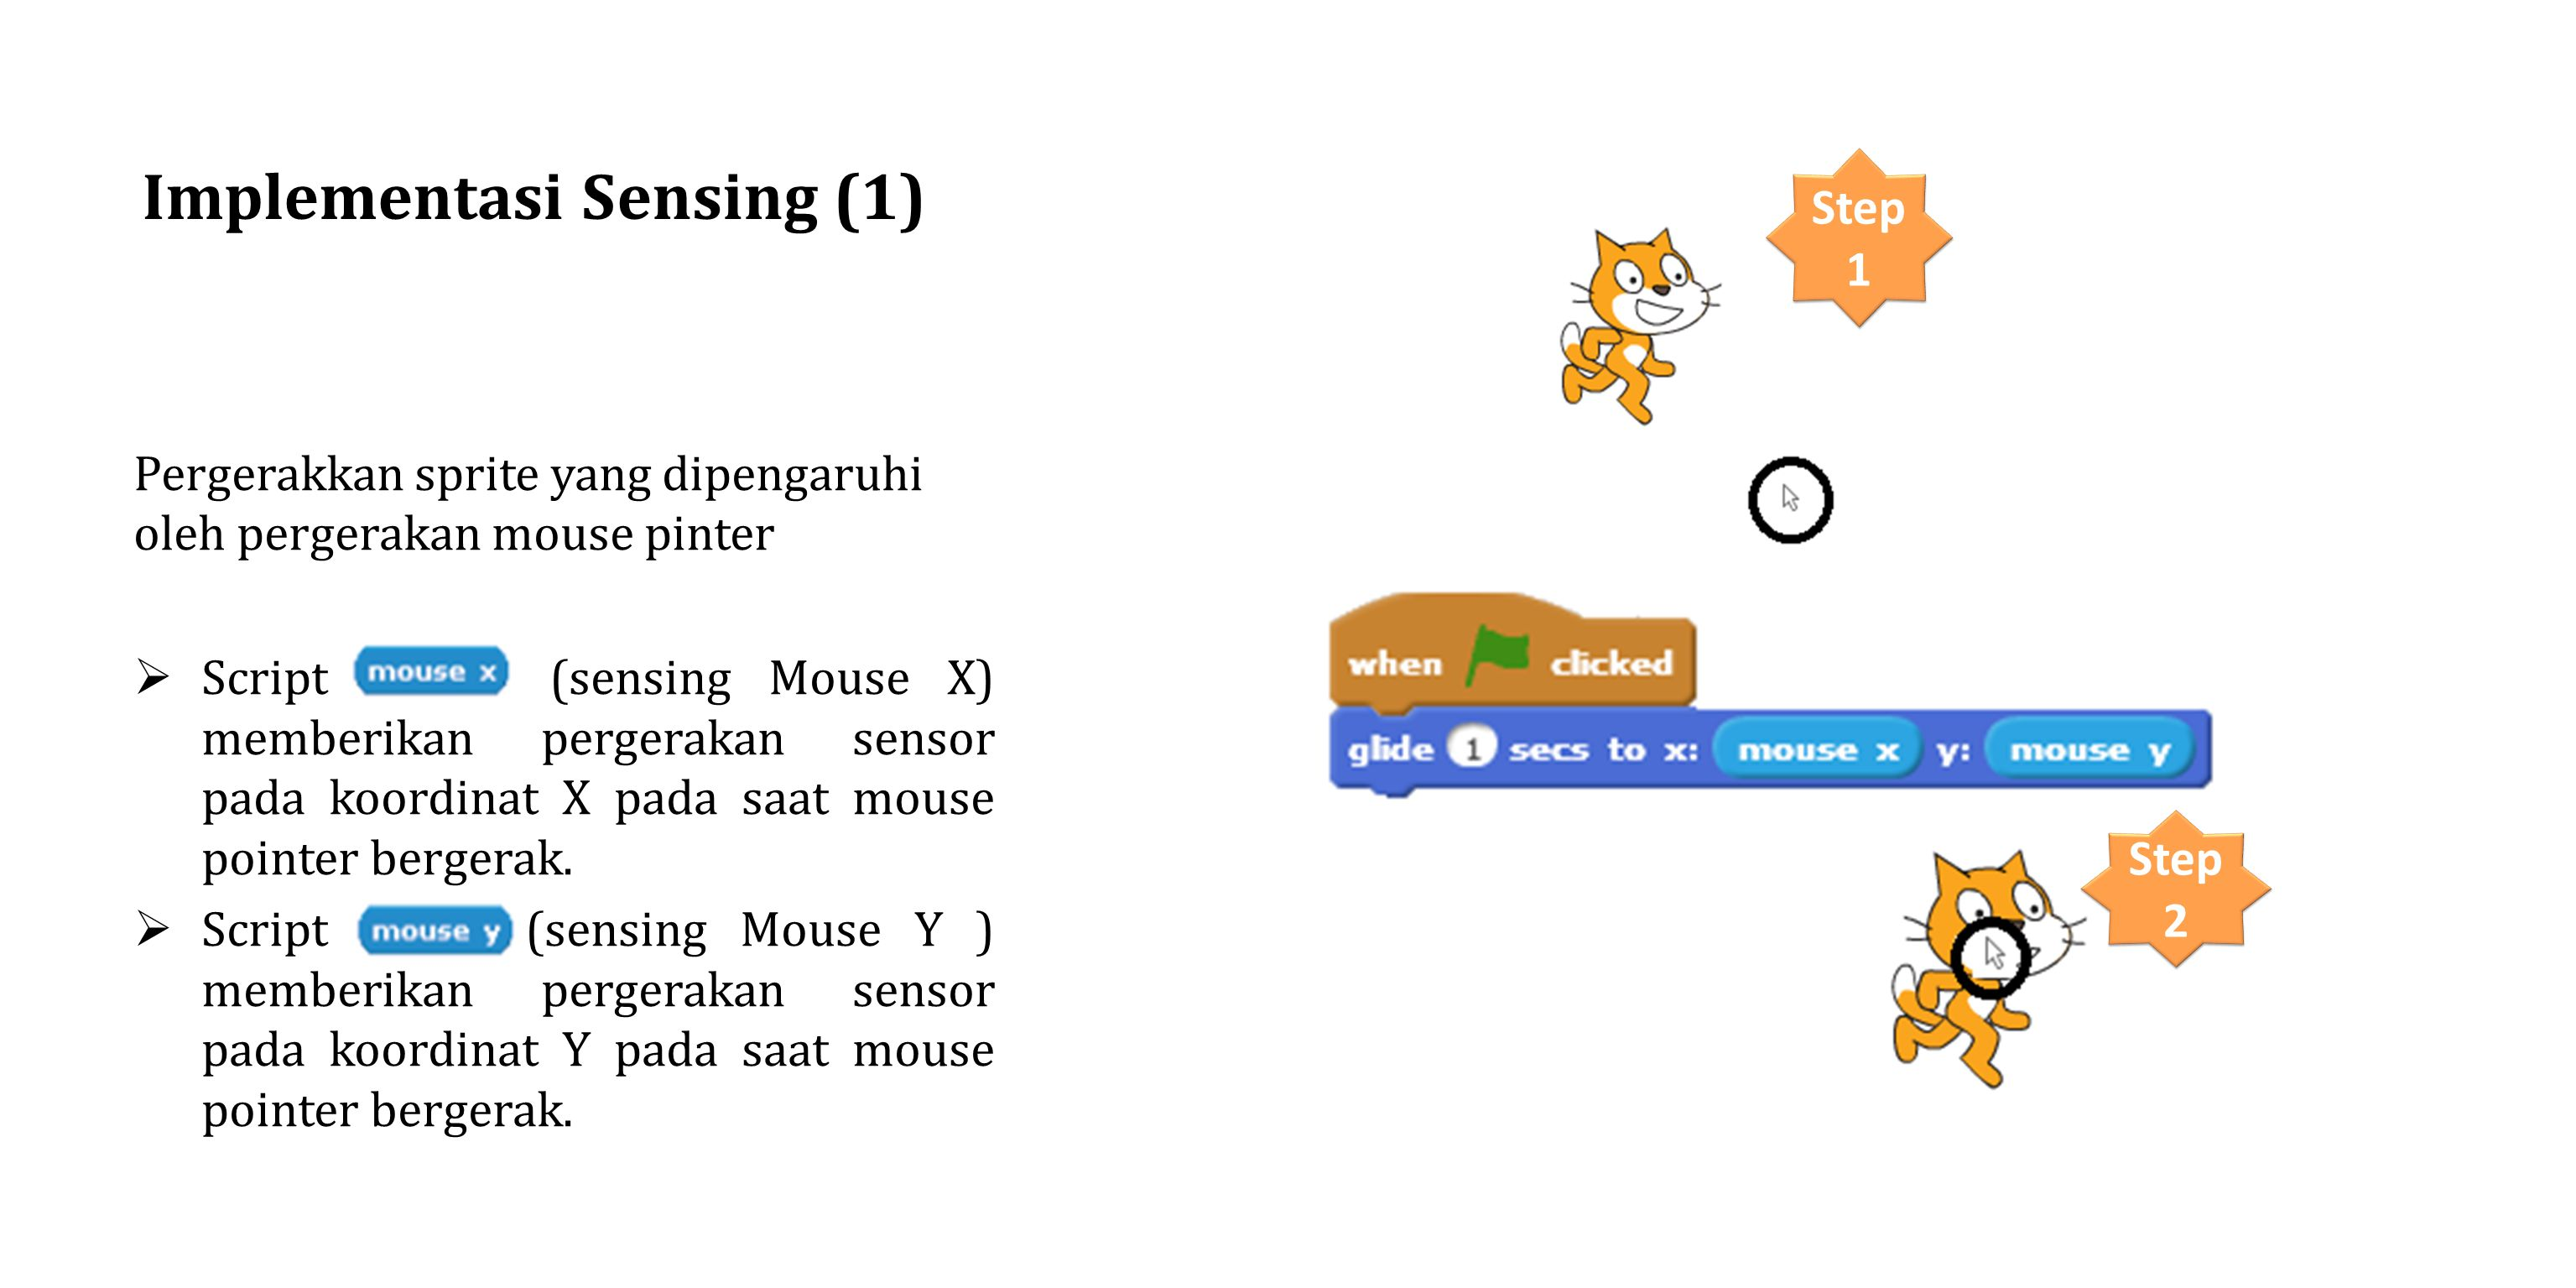 Implementasi Sensing (1)